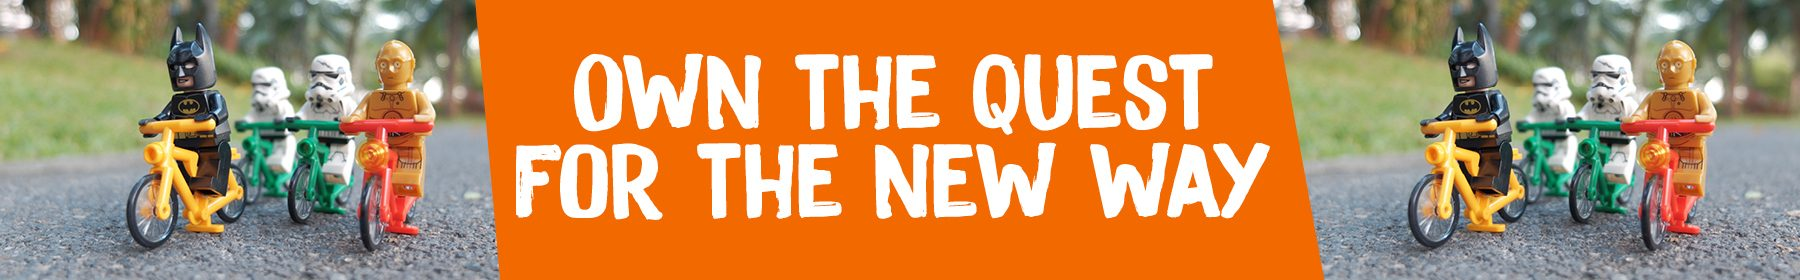 Quanton value own the quest for the new way